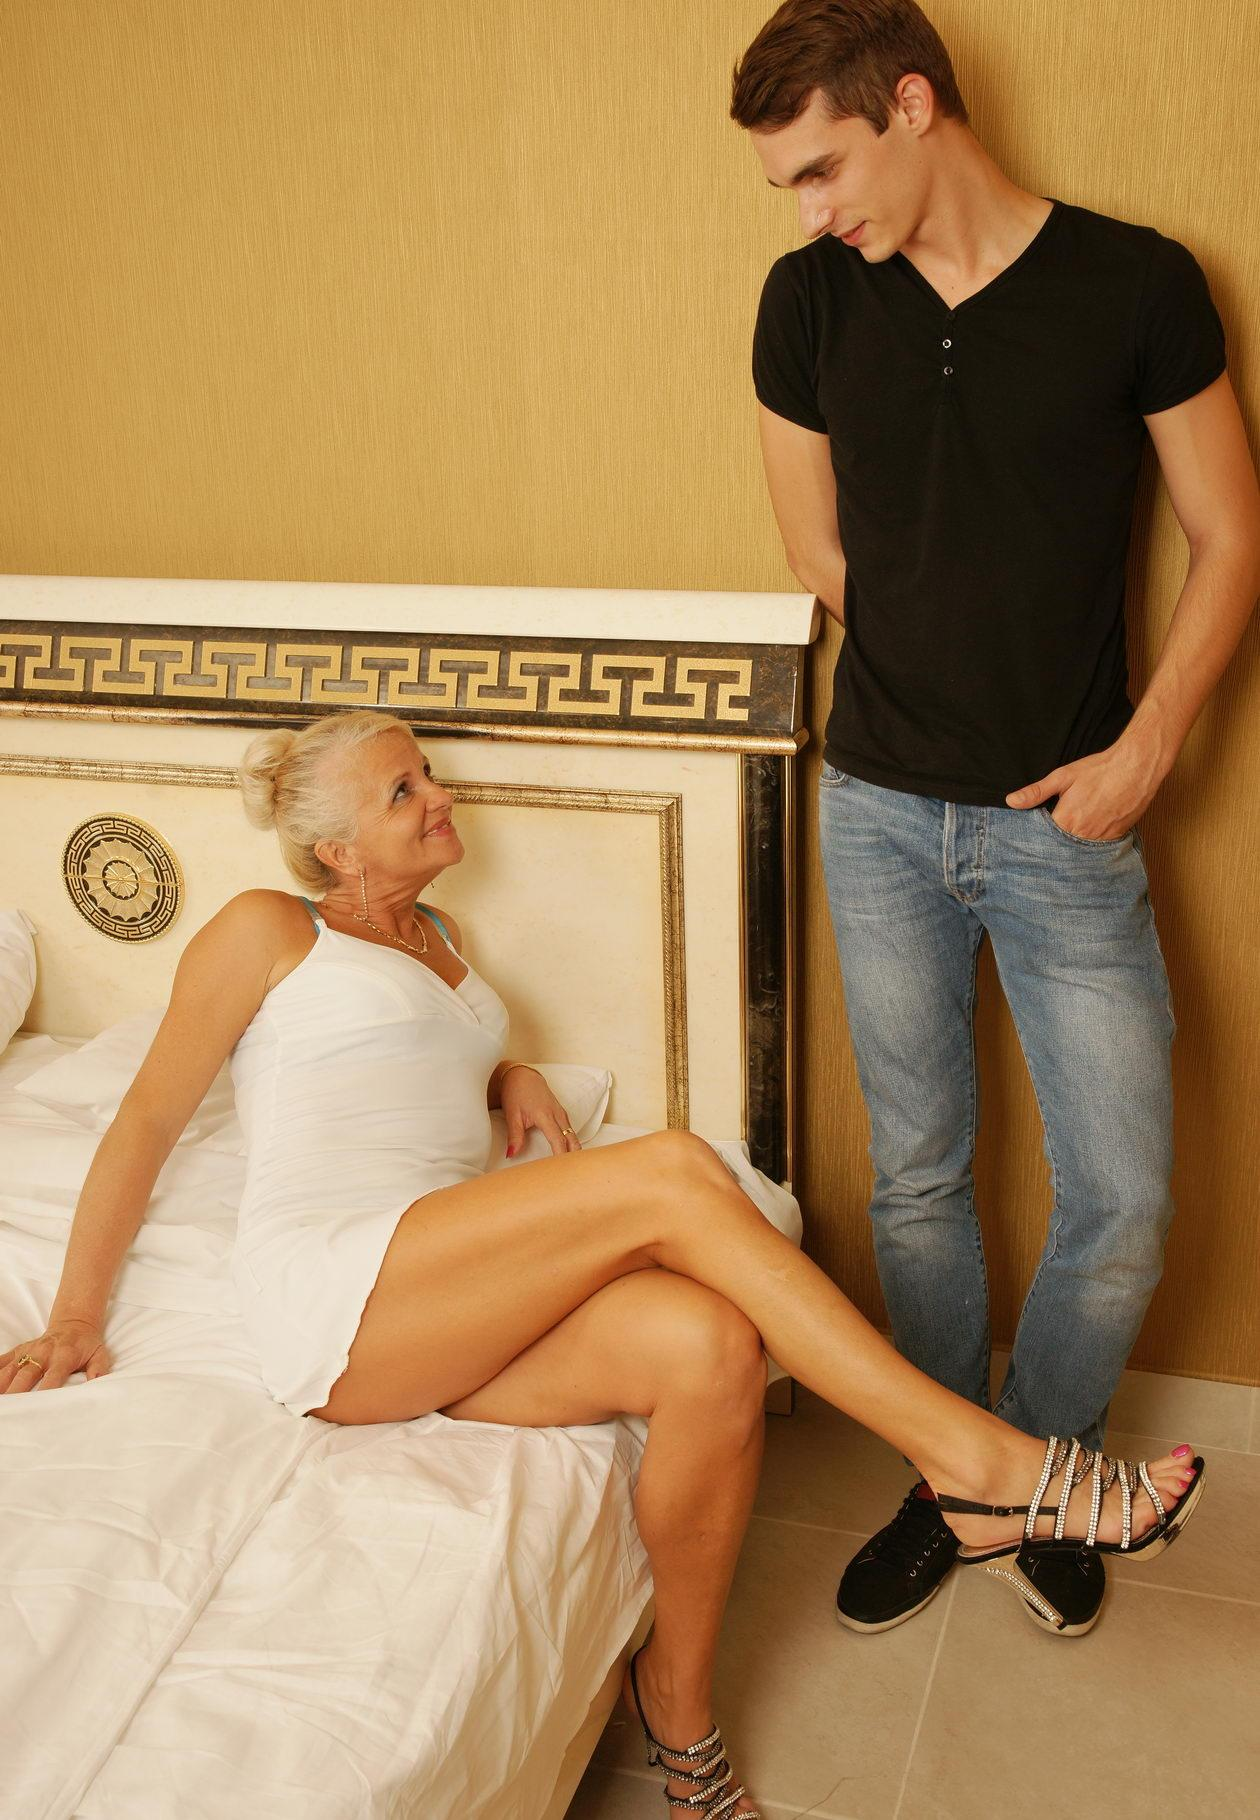 Alice a 61 old lustful SEDUCTIVE GRANNY seducing a young dude